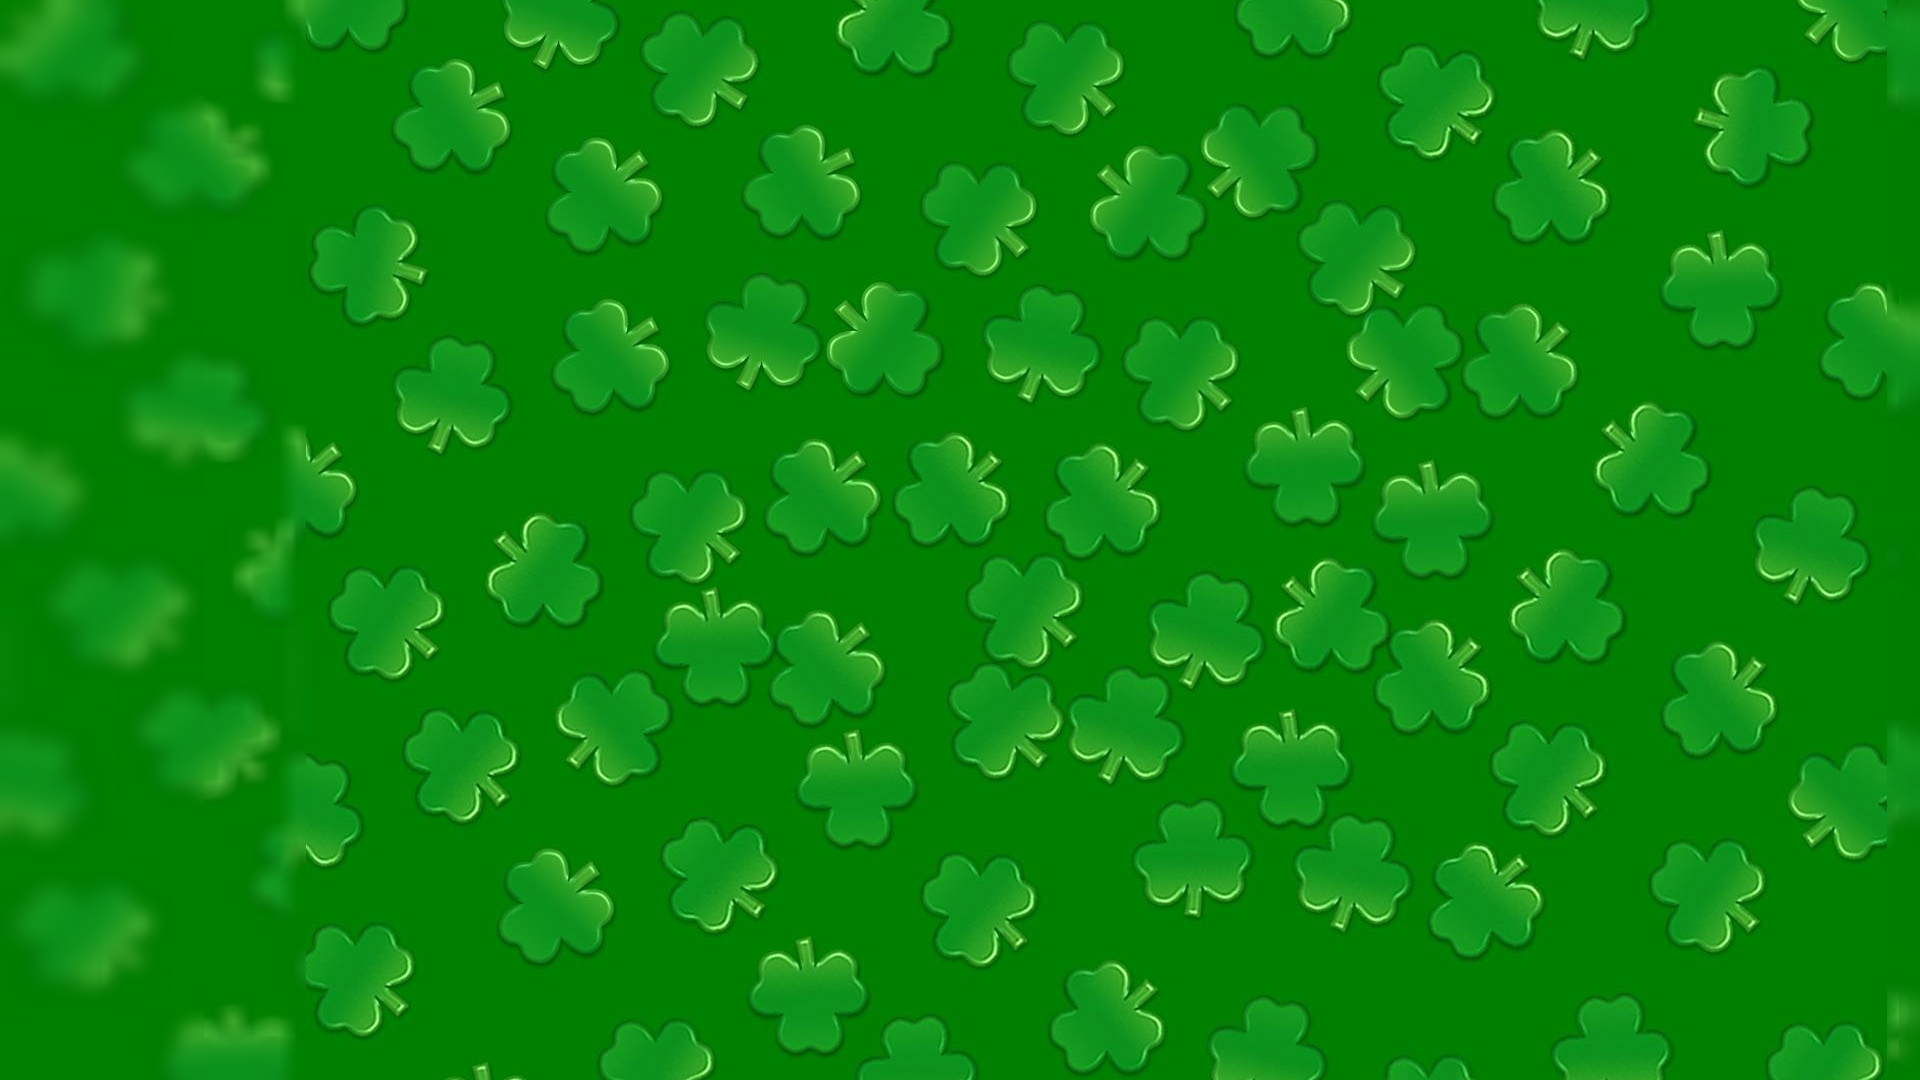 St Patricks St Patricks Day St Patricks Day HD Wallpaper 1920x1080